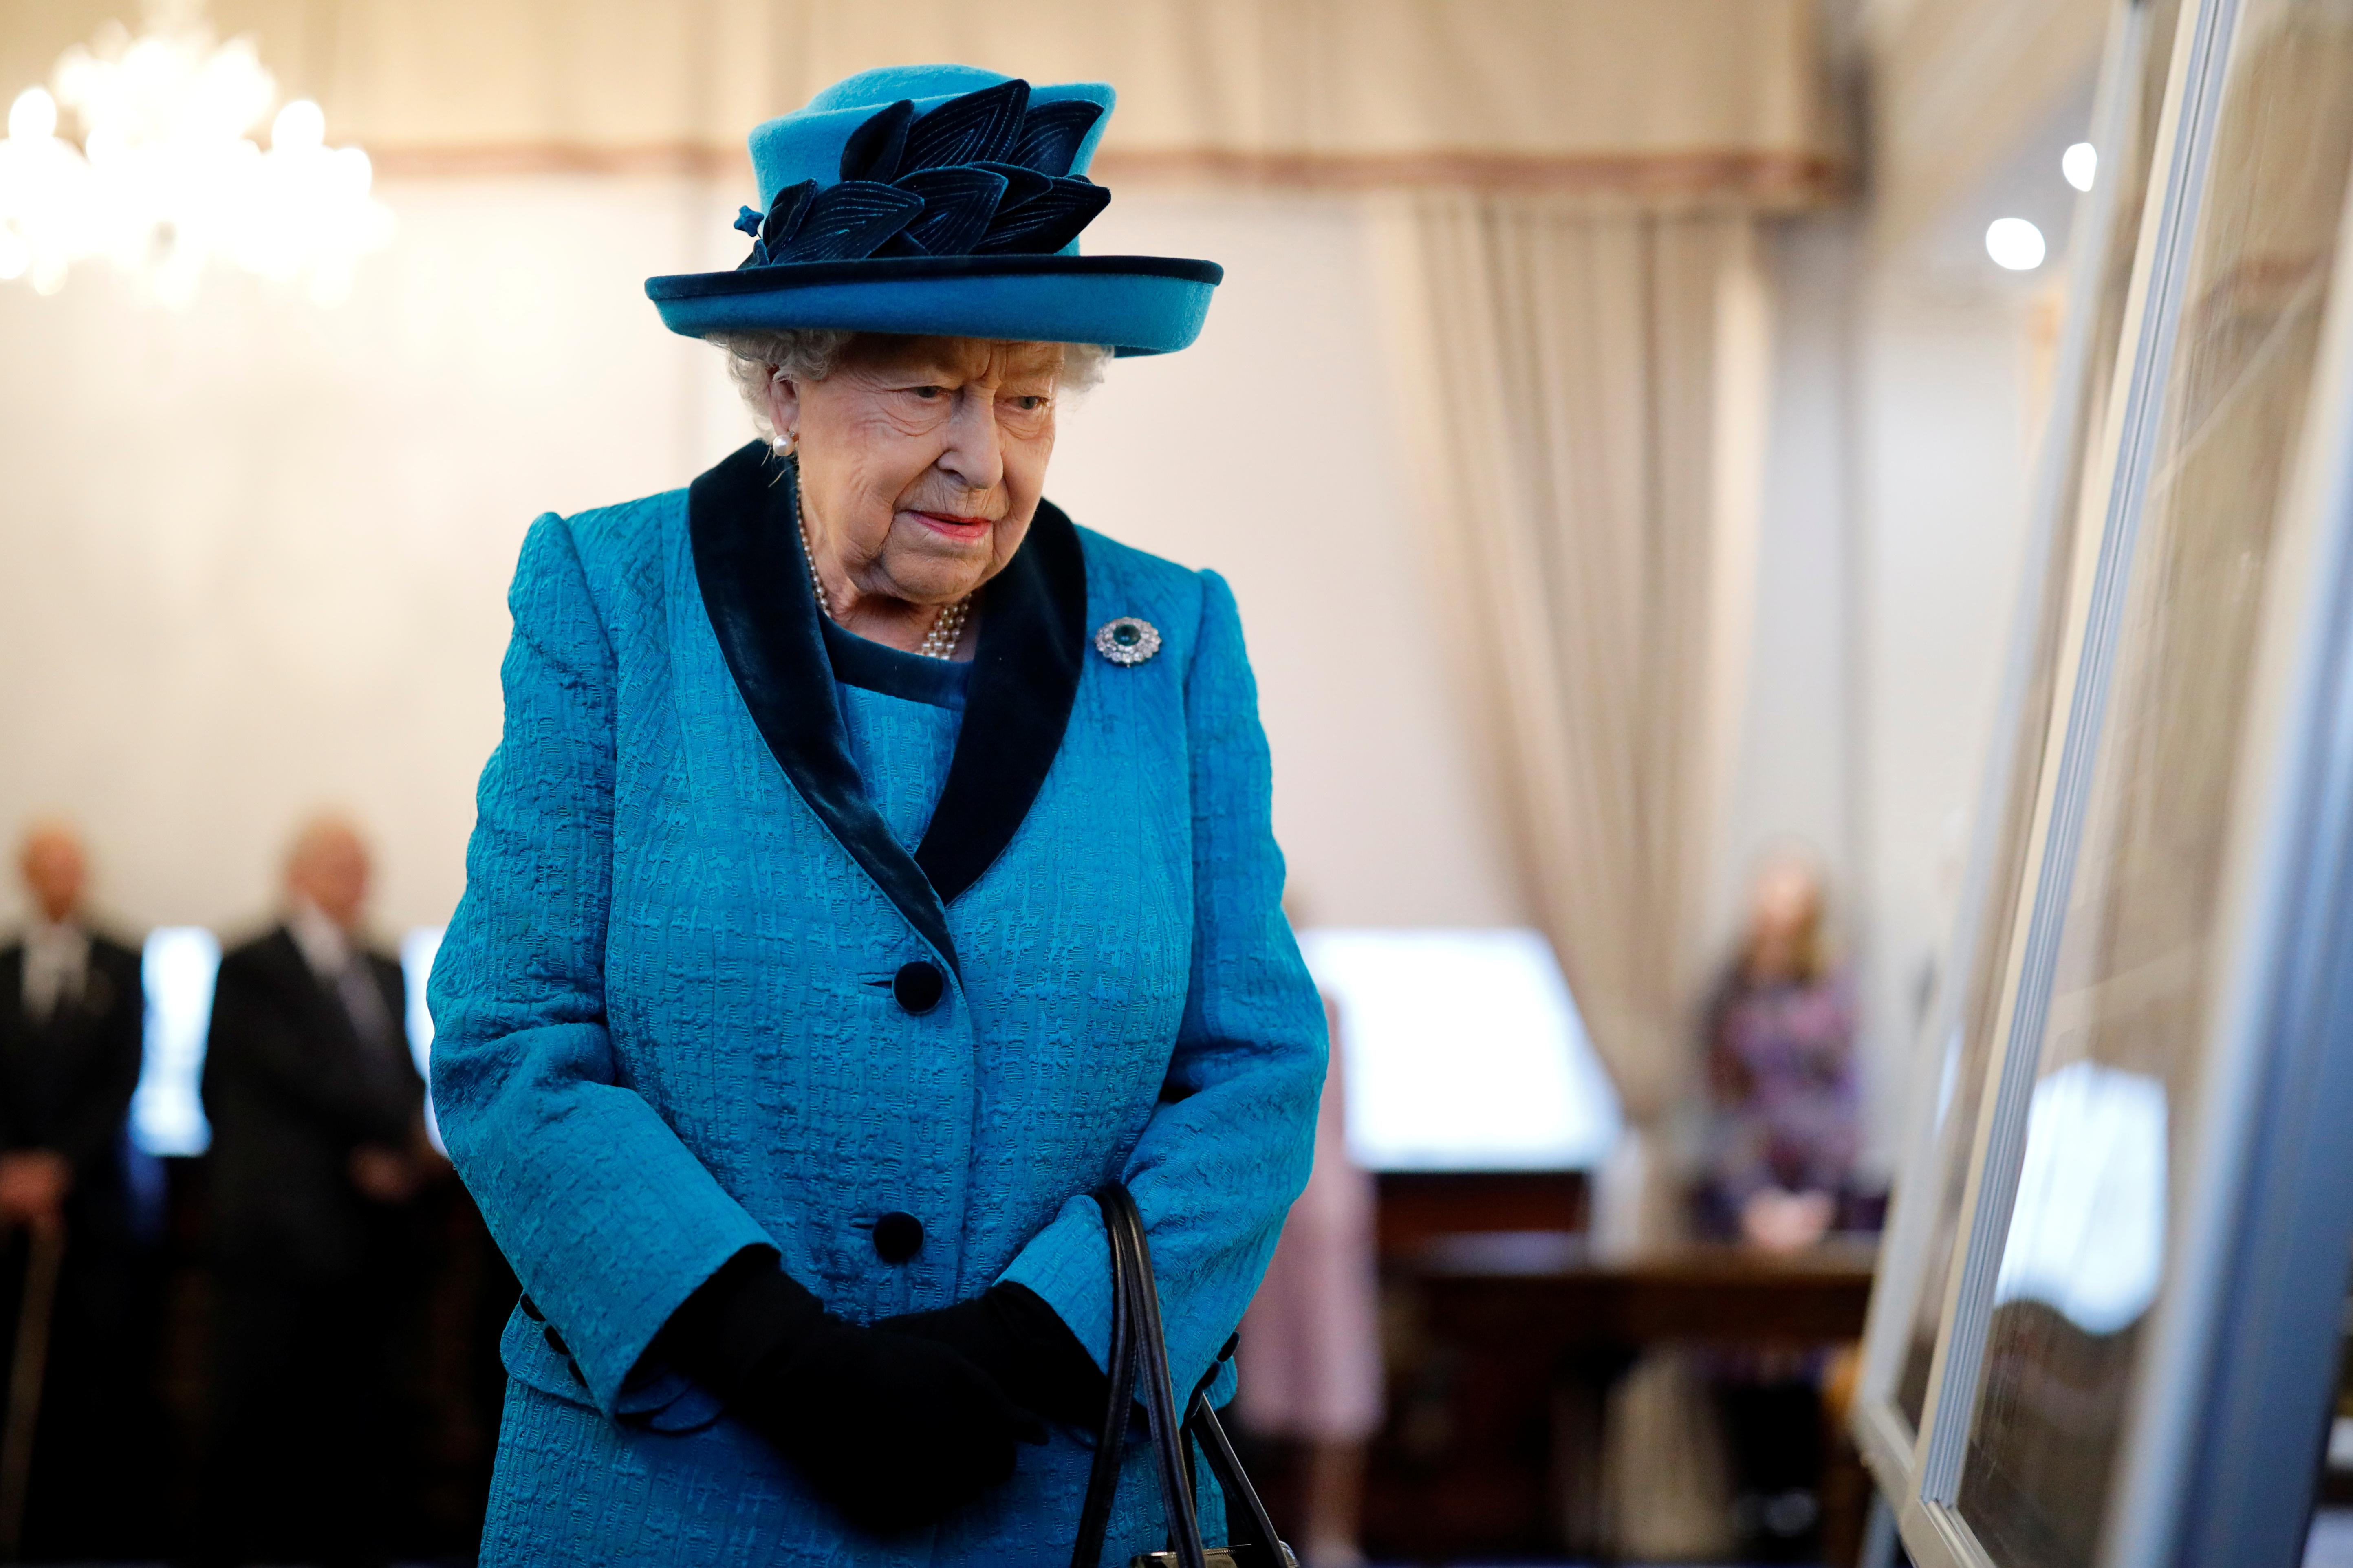 Queen is beyond reproach and distinct from royal family, UK PM...